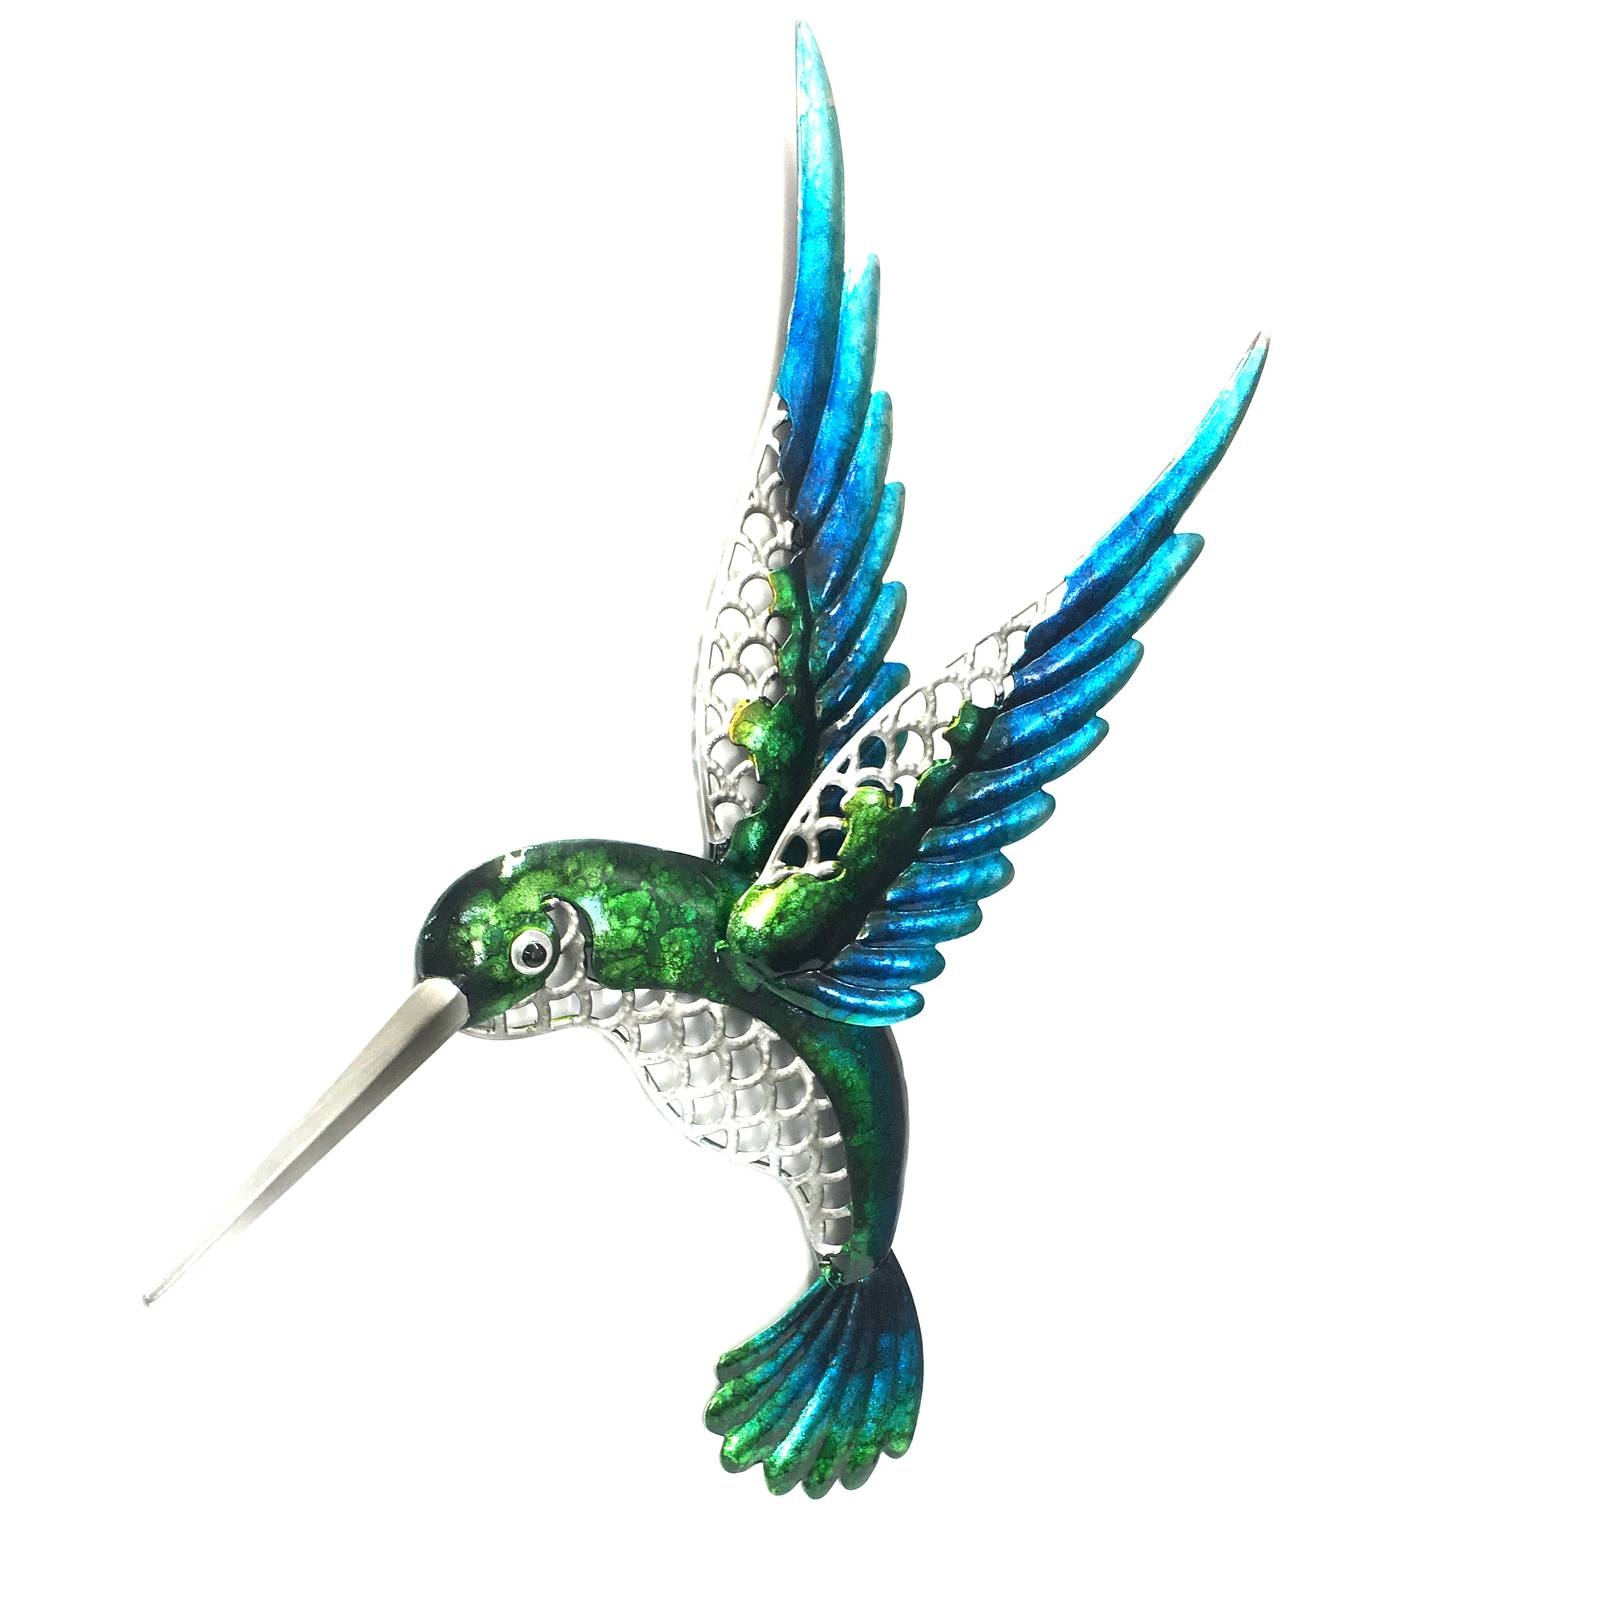 Hummingbird Metal Wall Art 46Cm In Most Current Hummingbird Metal Wall Art (View 5 of 20)